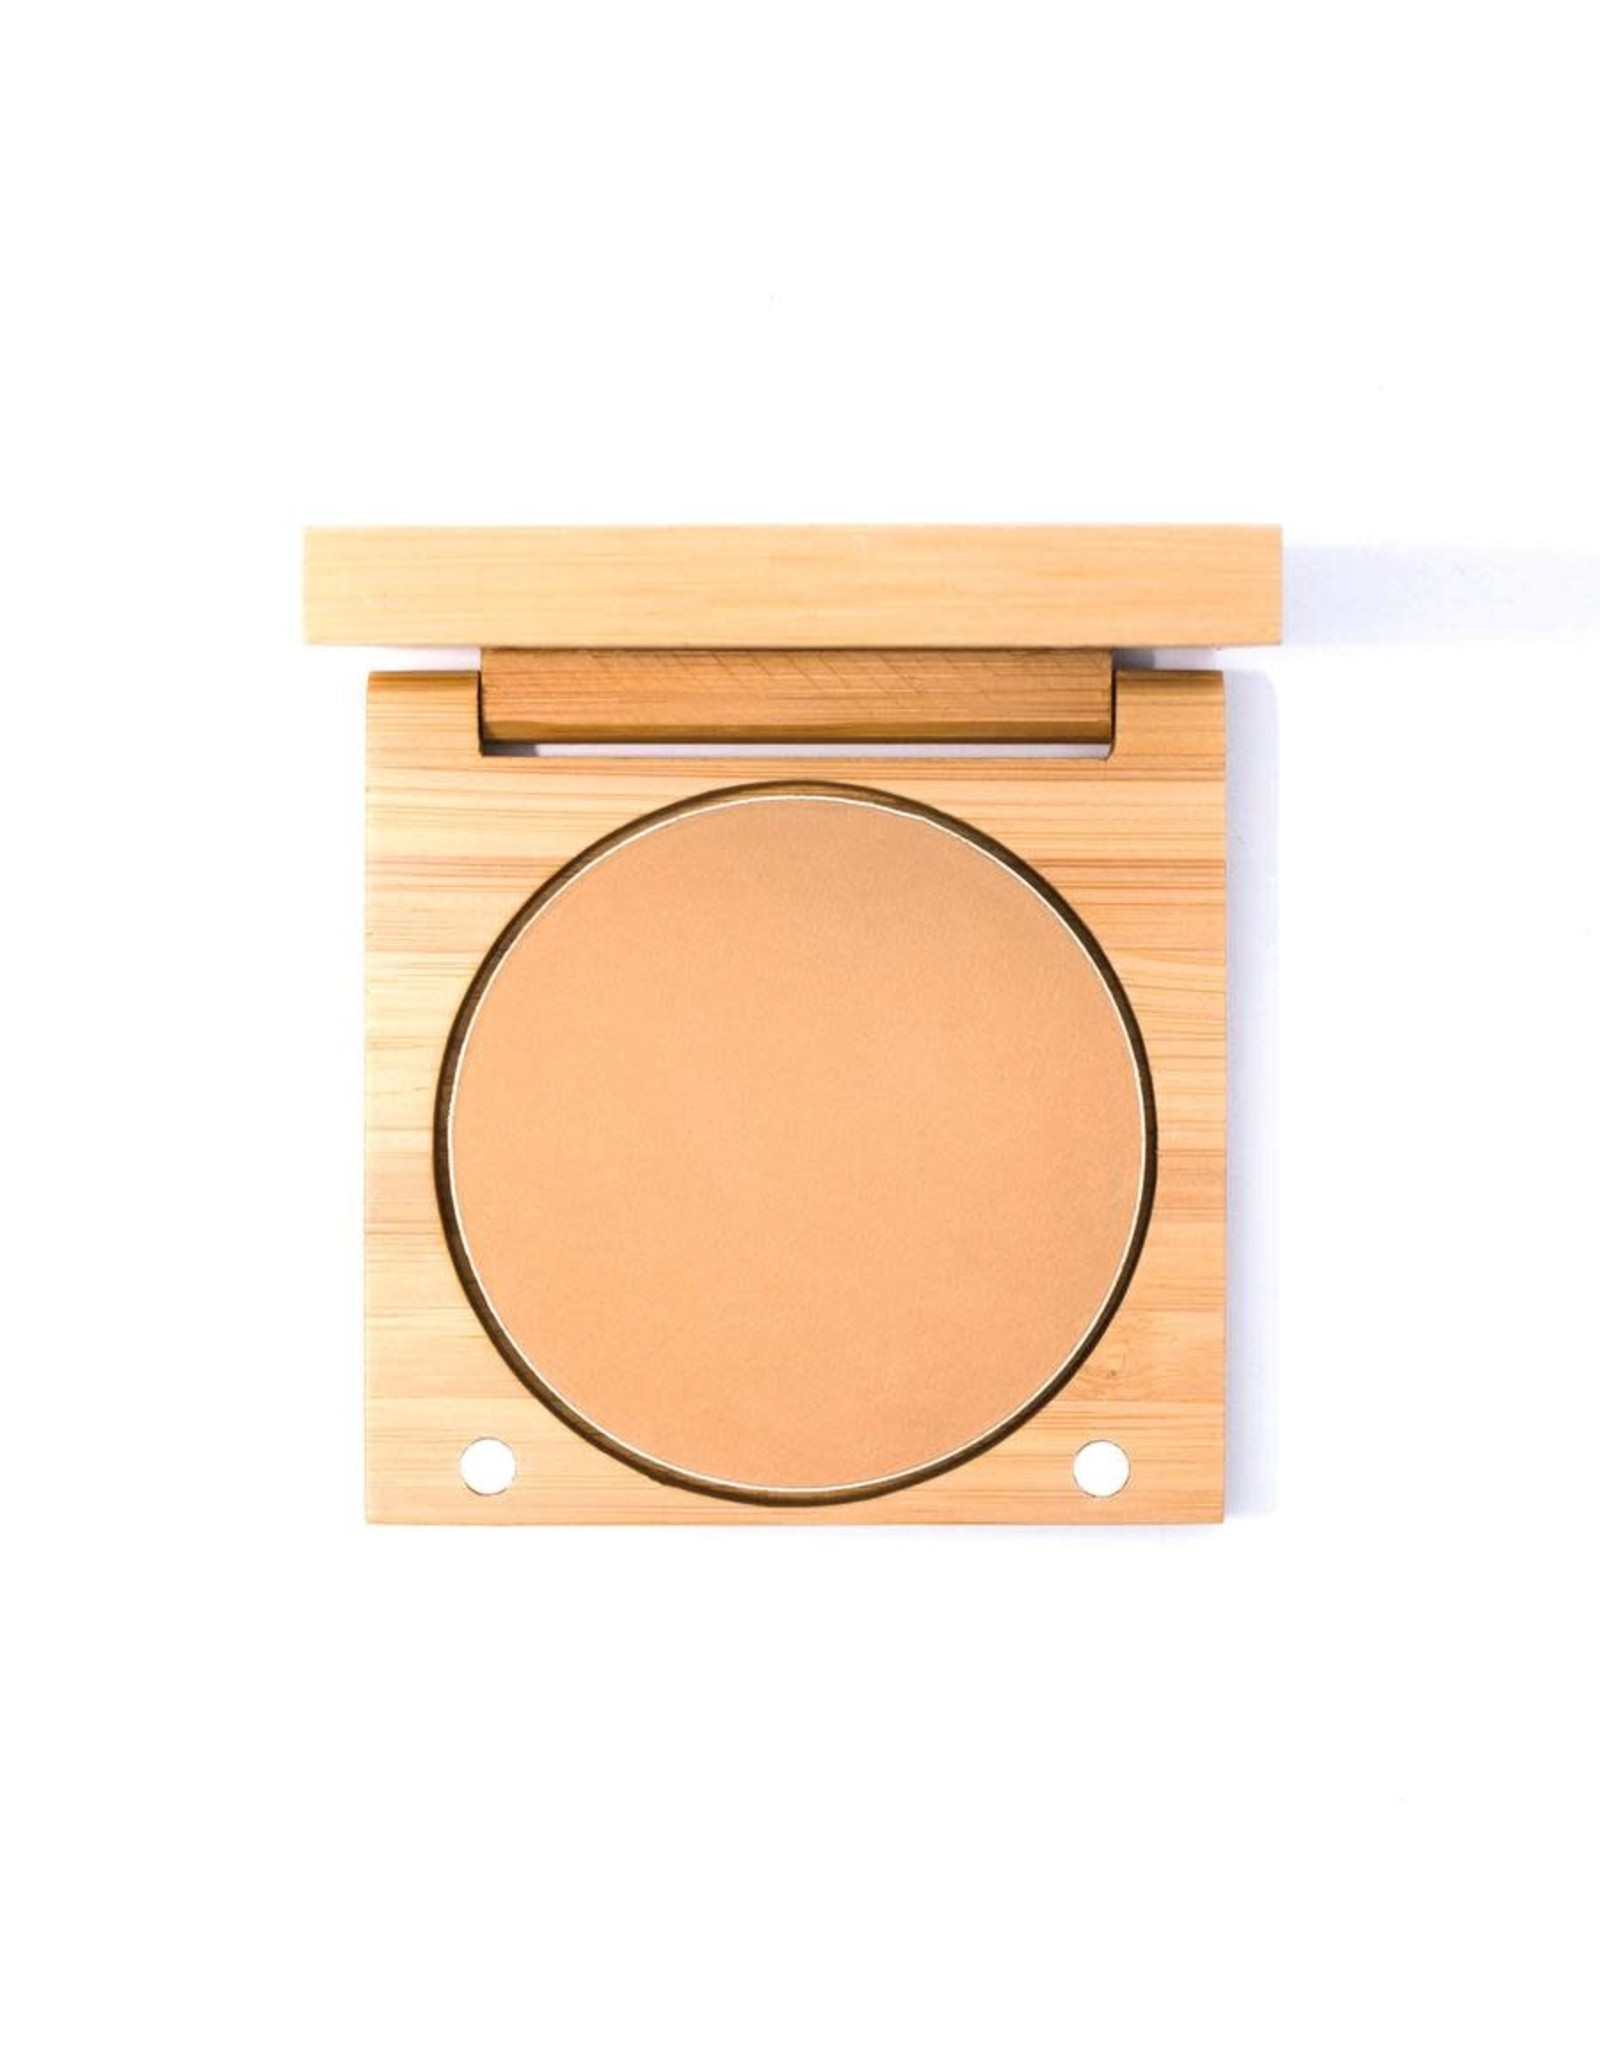 Elate Cosmetics Elate Pressed Foundation PN3